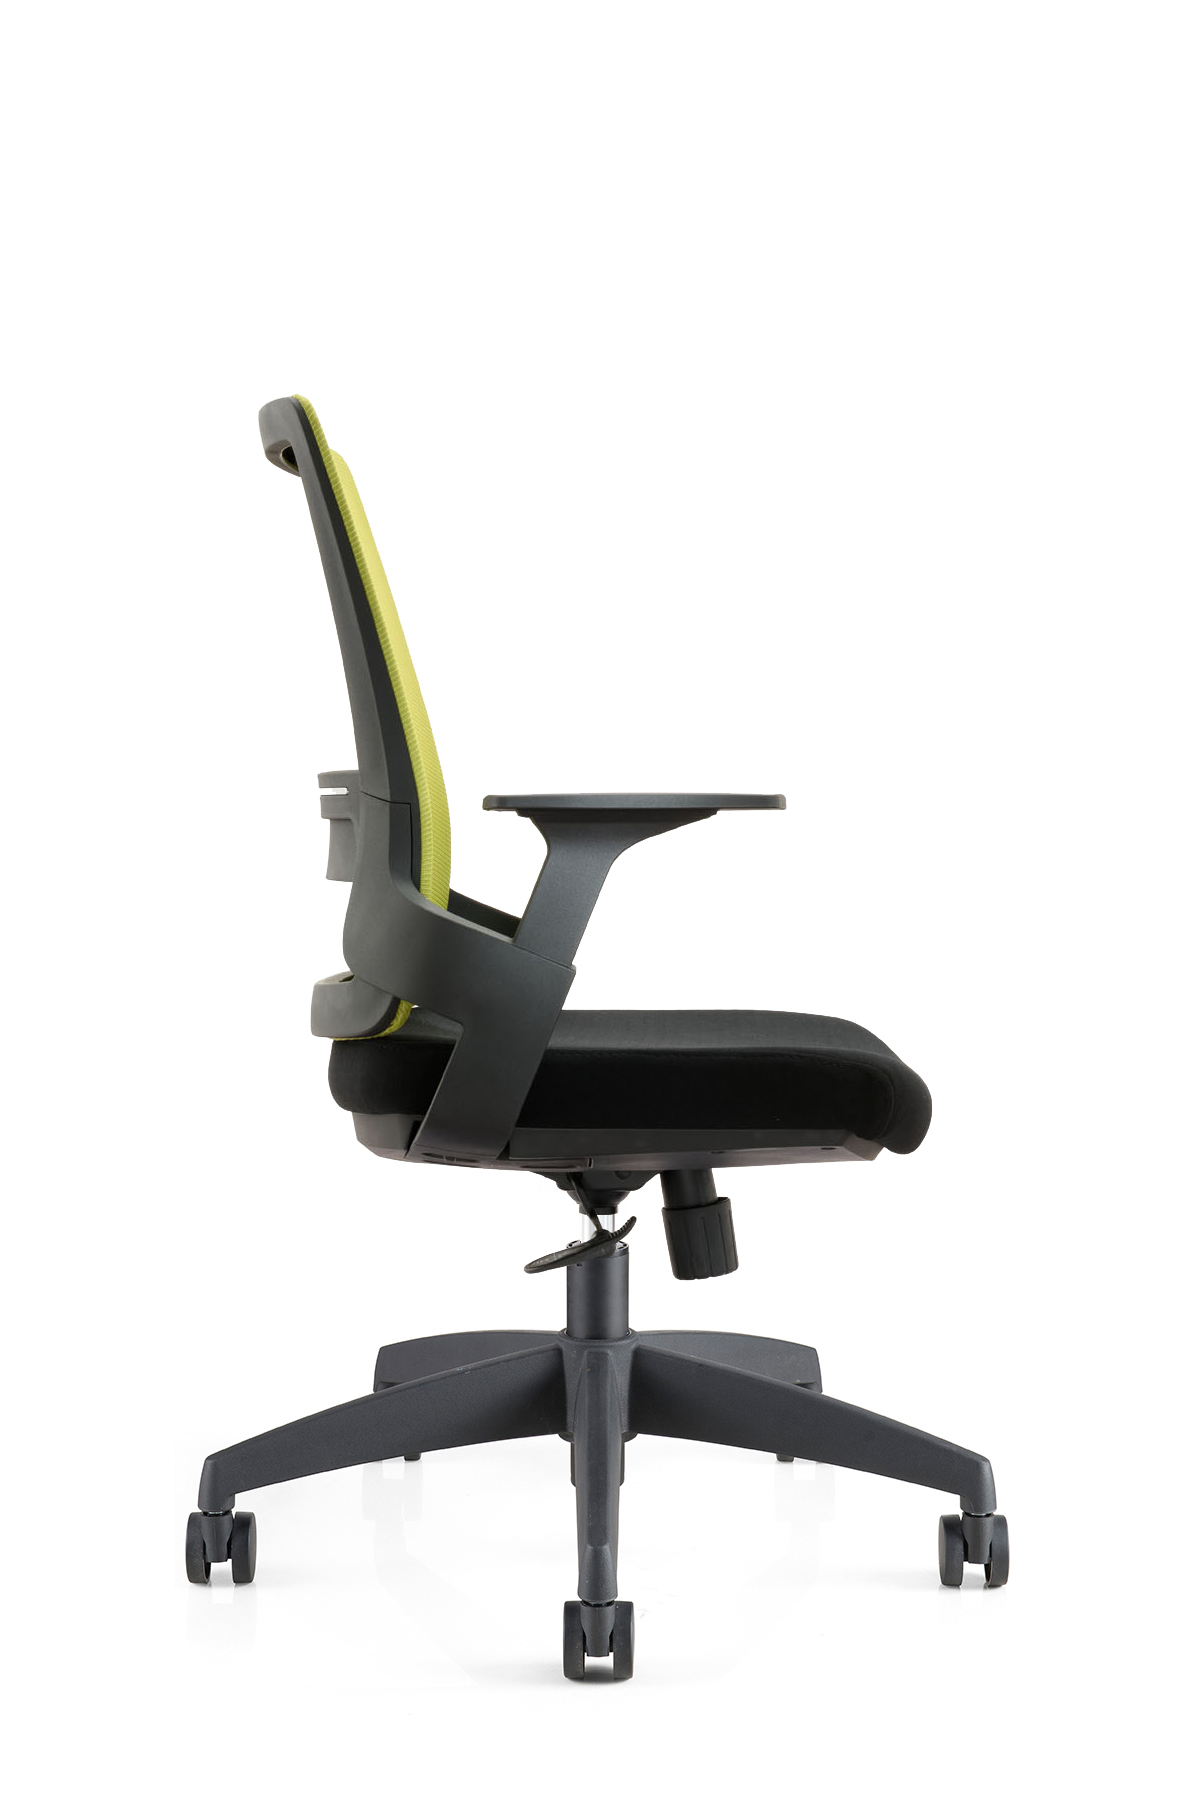 Prime Supply Best Ergonomic Office Chair Factory Quotes Oem Download Free Architecture Designs Estepponolmadebymaigaardcom